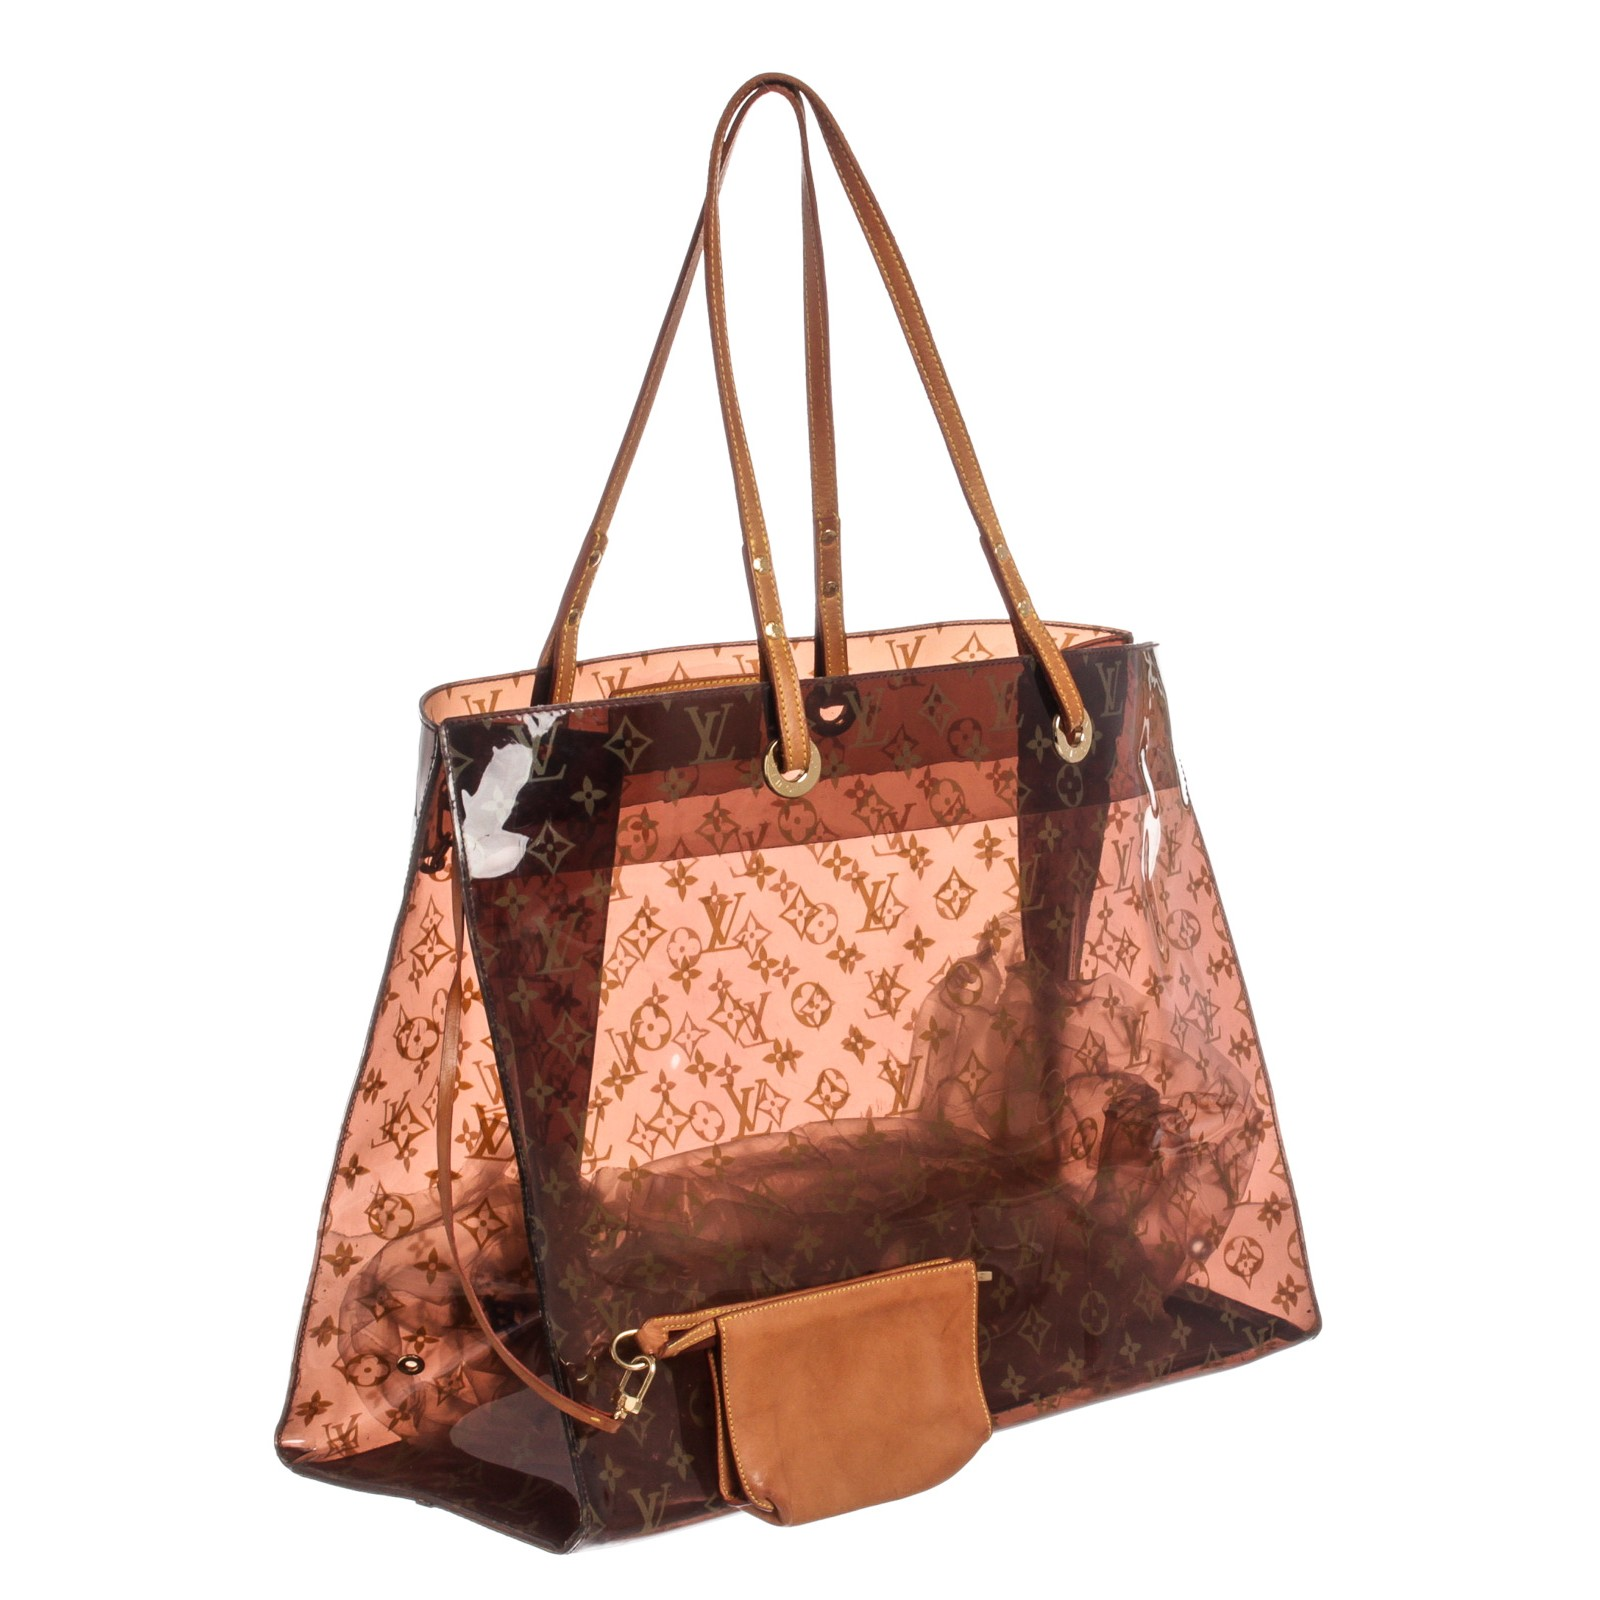 8e5e56bf3e52 Eye catching louis vuitton monogram tote trade bag jpg 1600x1600 Hanging  toiletry bag news monogram esc